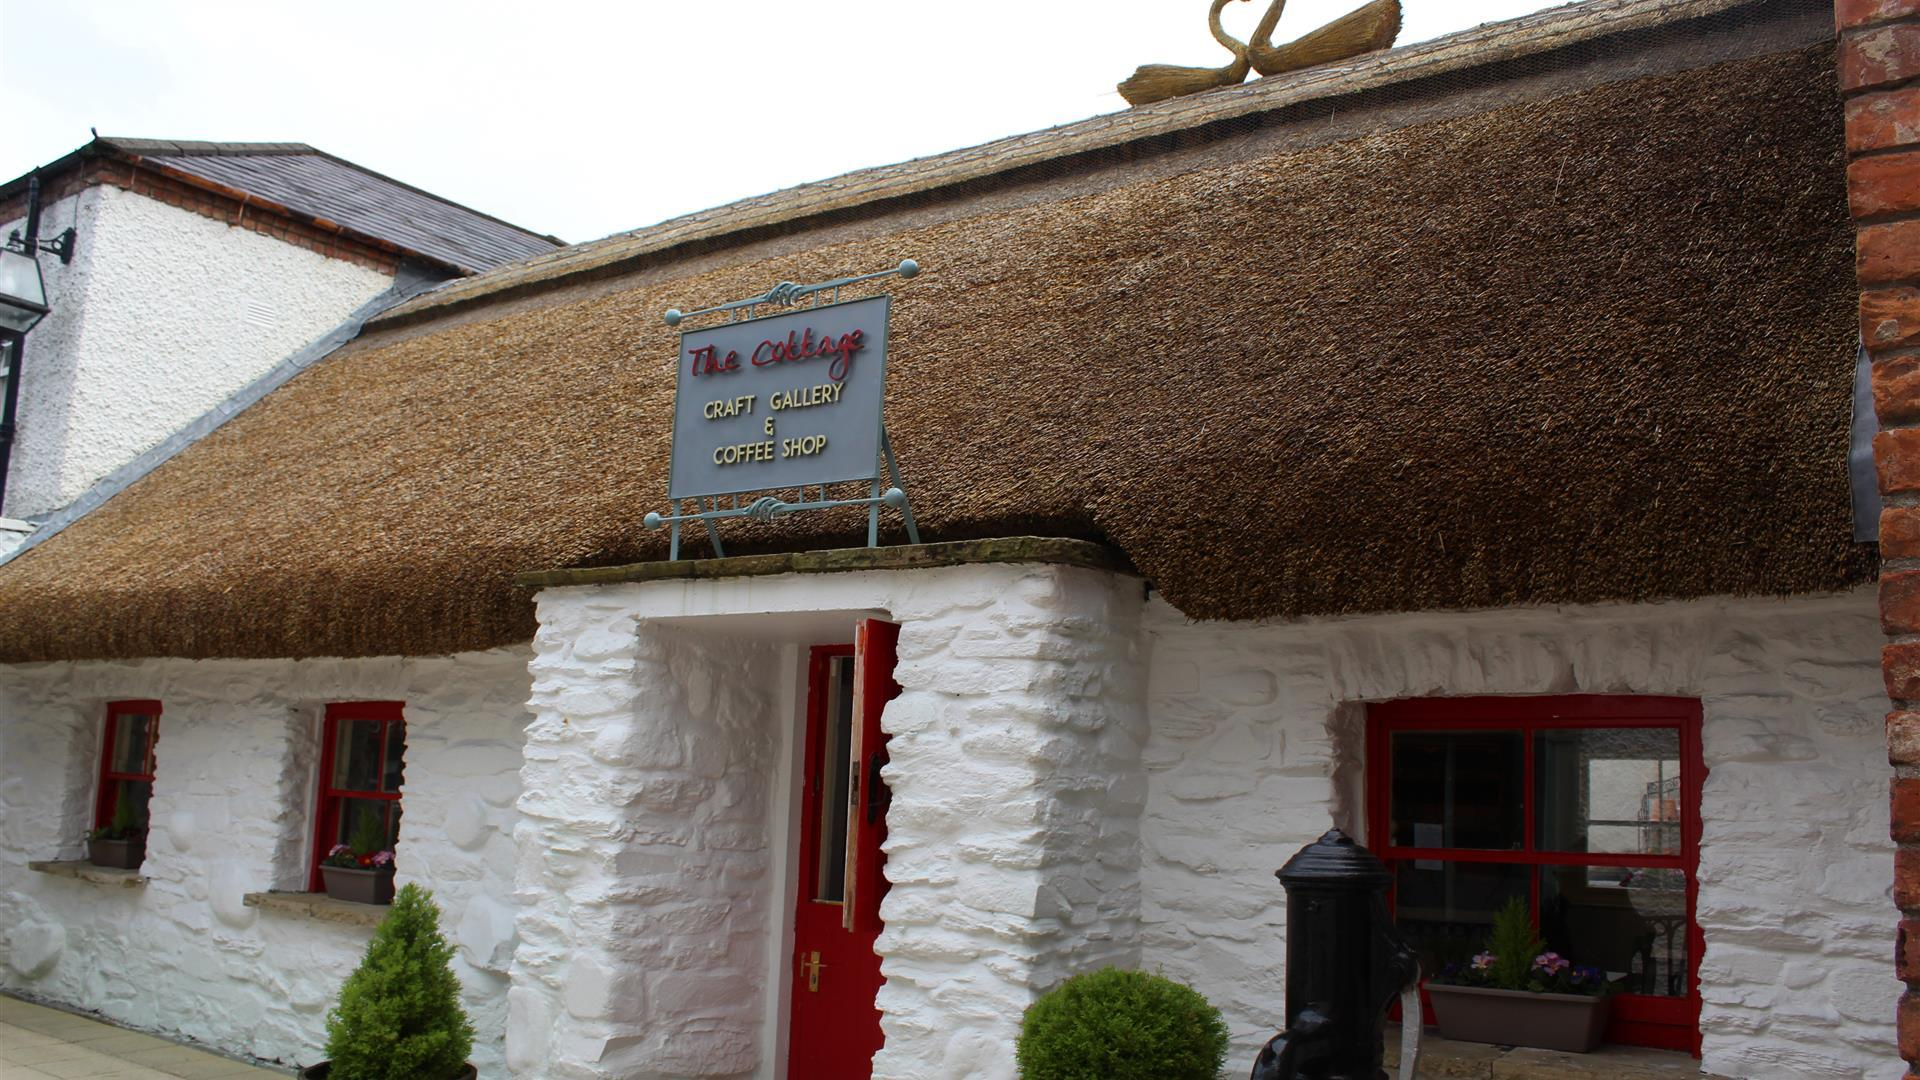 The Cottage Craft Gallery and Coffee Shop